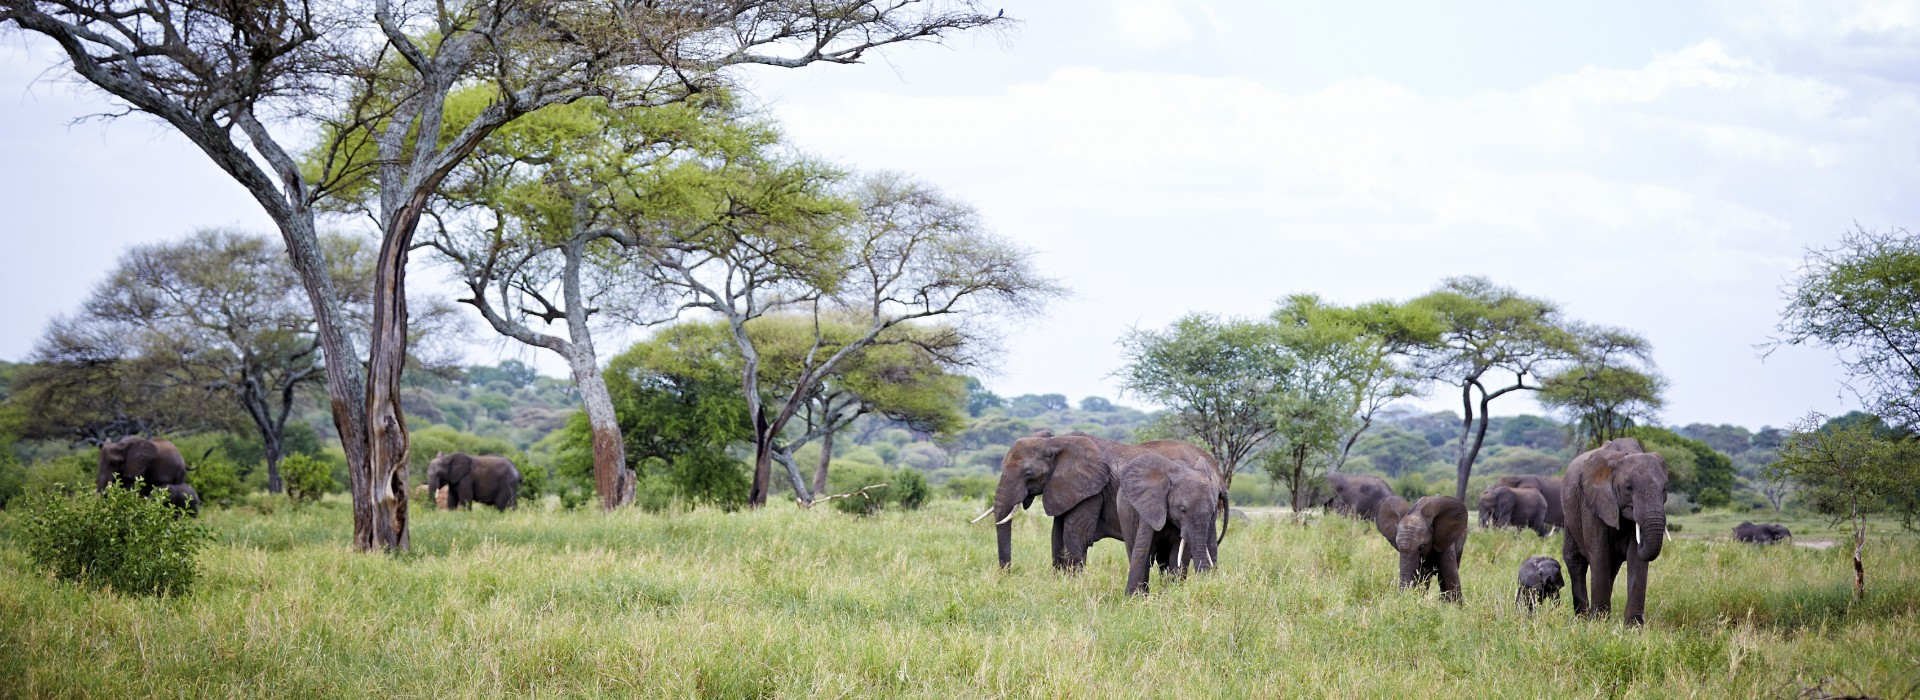 A family of elephants grazing in the plain lands of Tarangire National Park